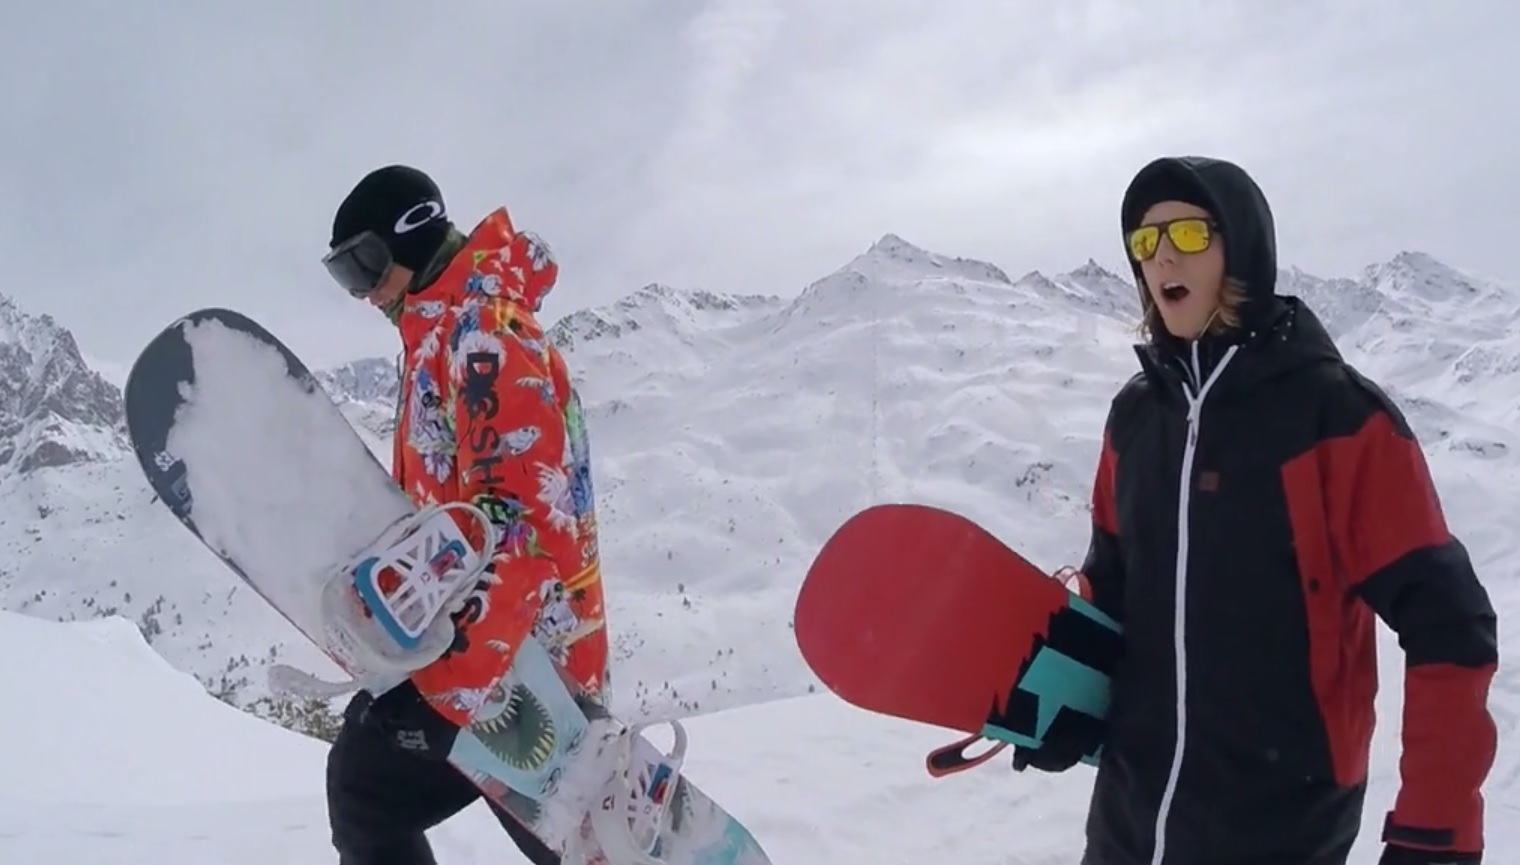 236984dc6e8e Shred Bots  The Movie with Pro Snowboarder Torstein Horgmo